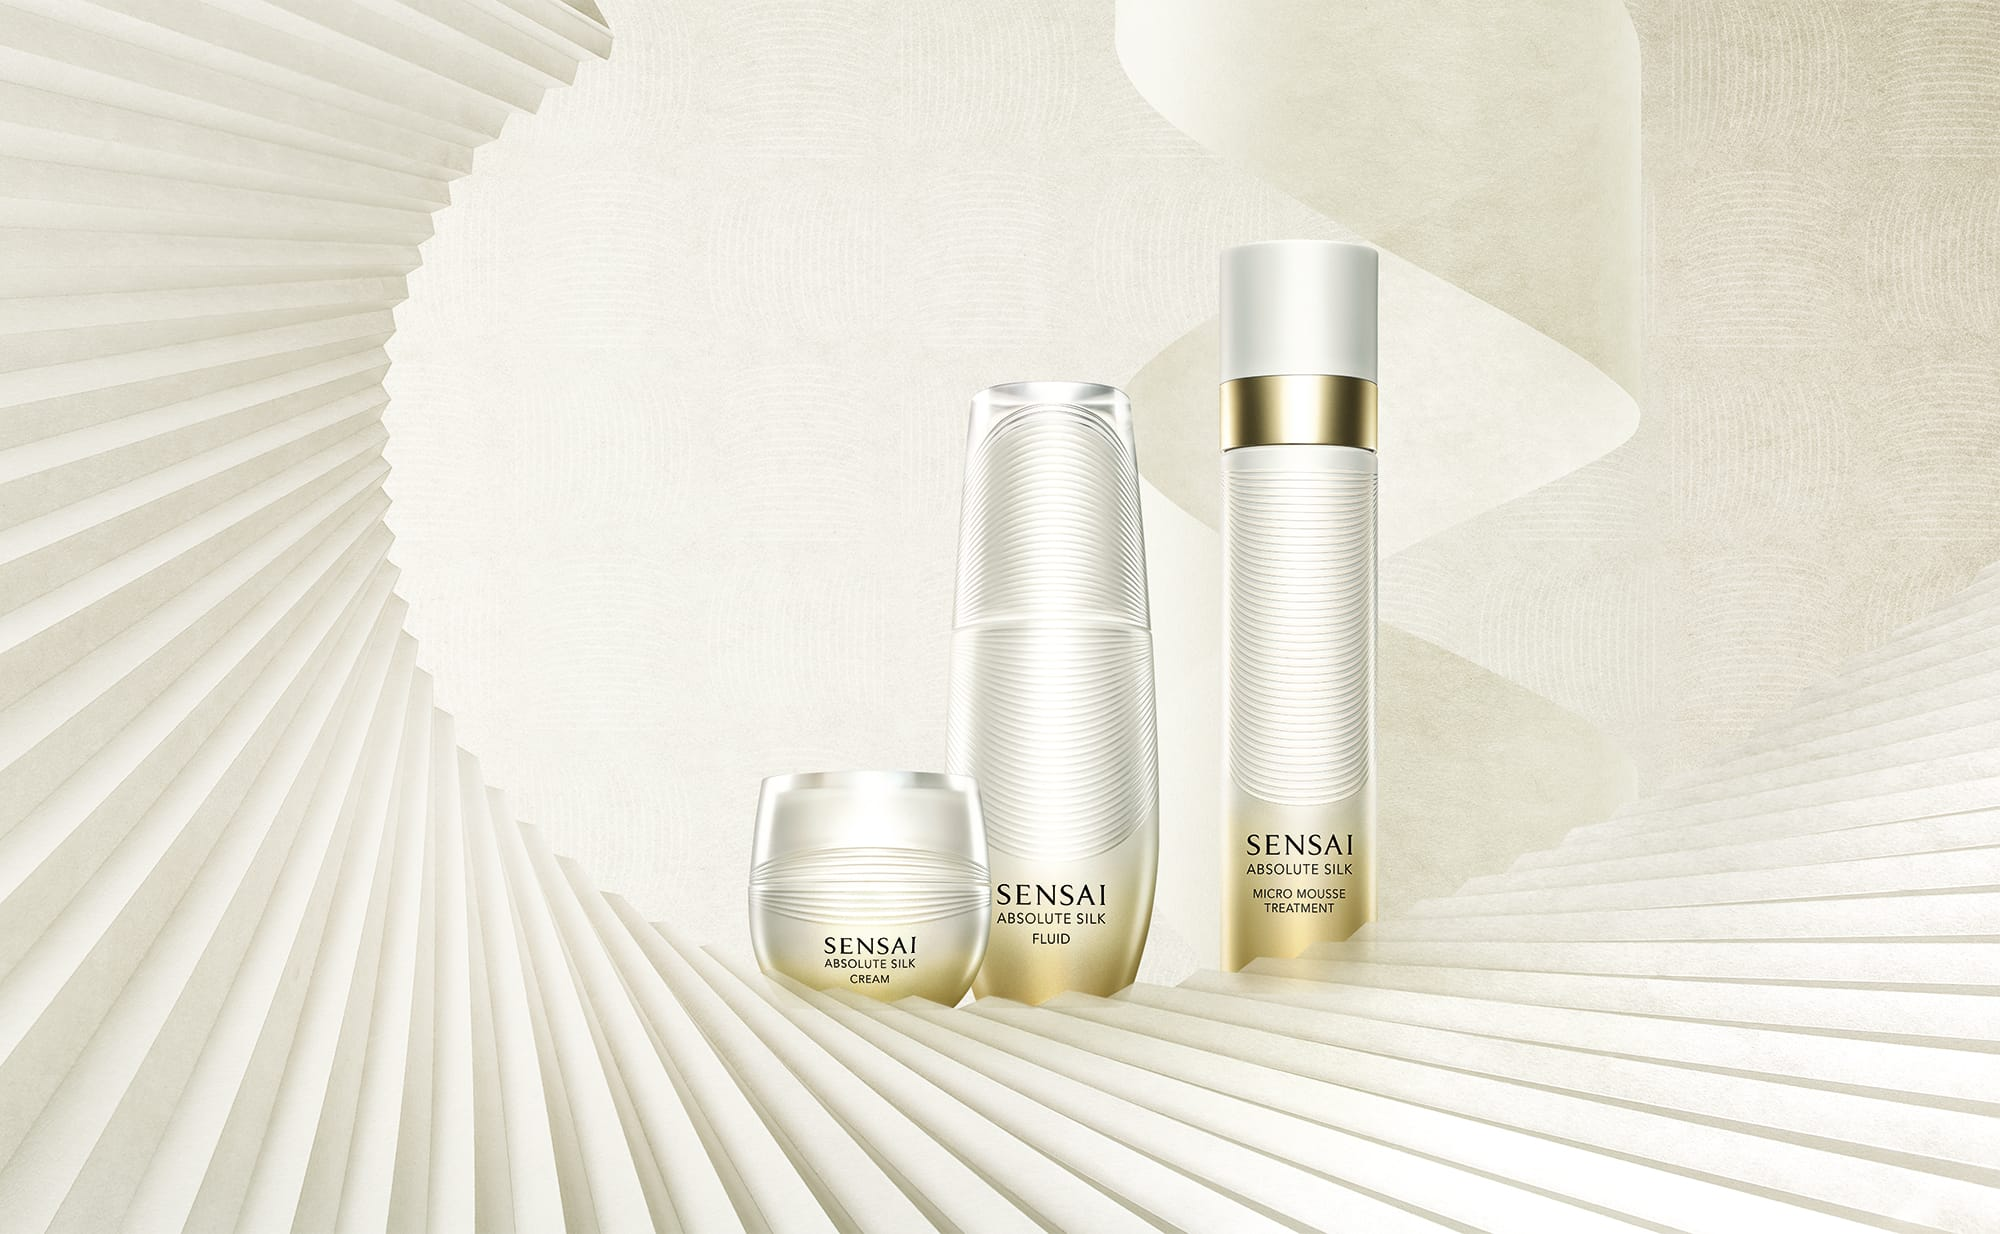 The SENSAI AS Series expresses the beauty of Koishimaru Silk through daily skincare.